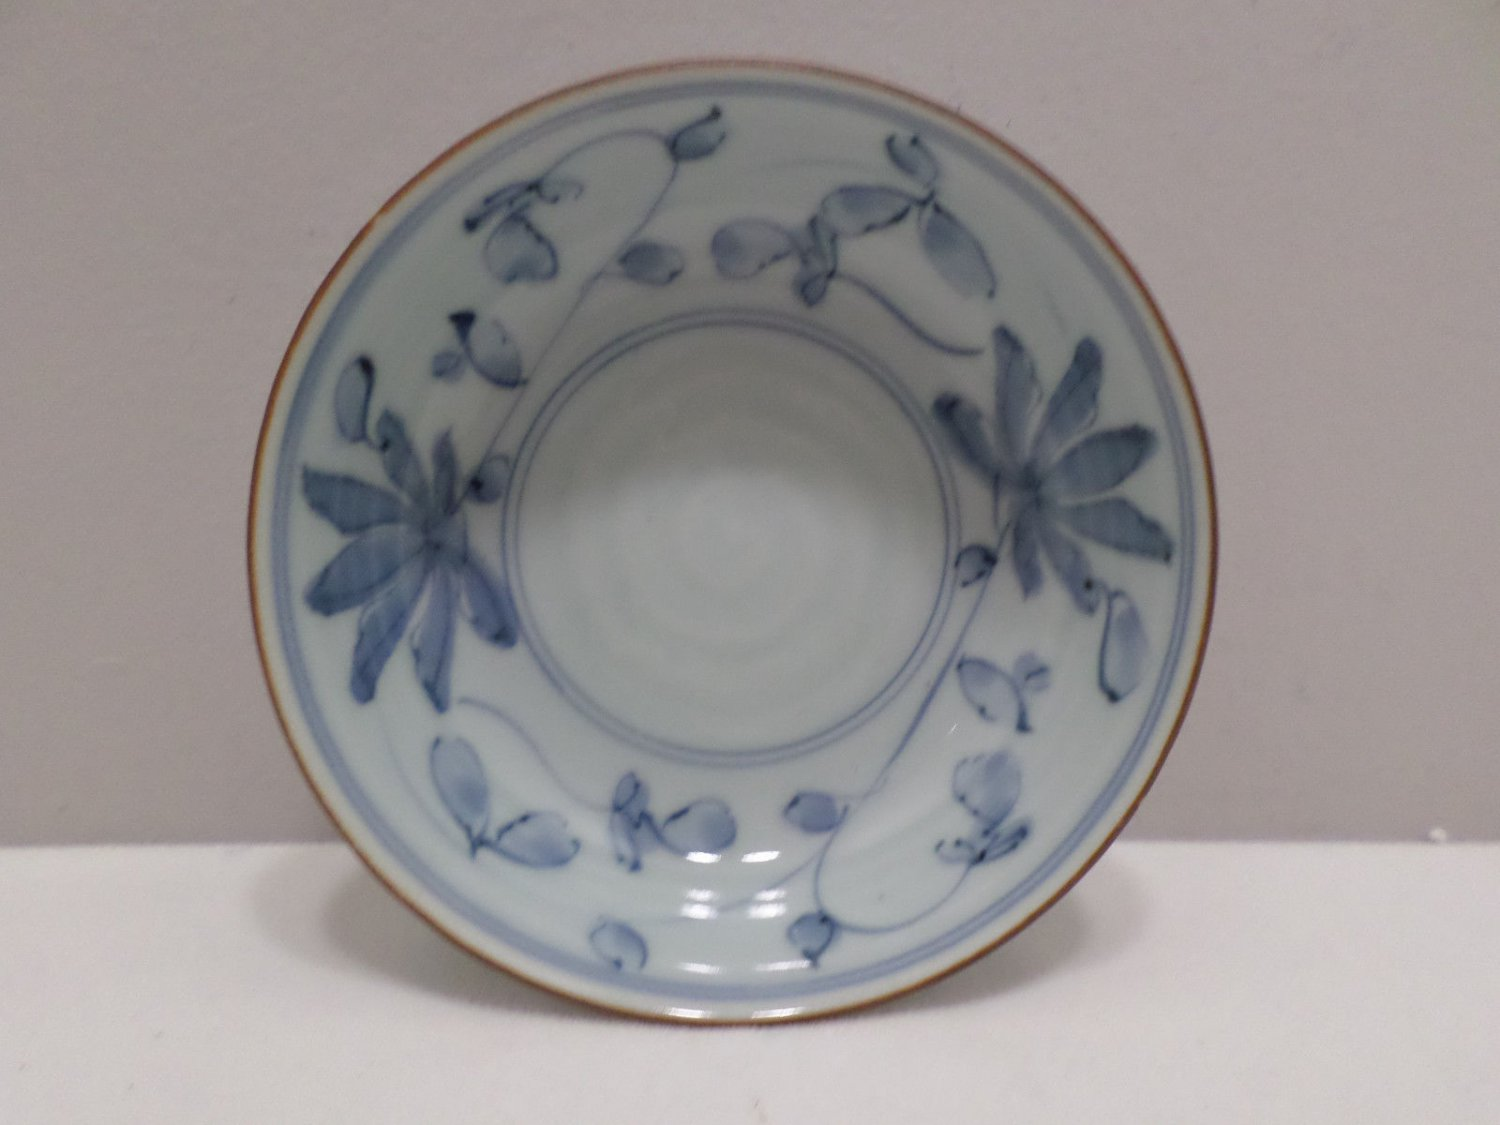 Vintage Asian Bowl Signed by Artist Blue and White Porcelain